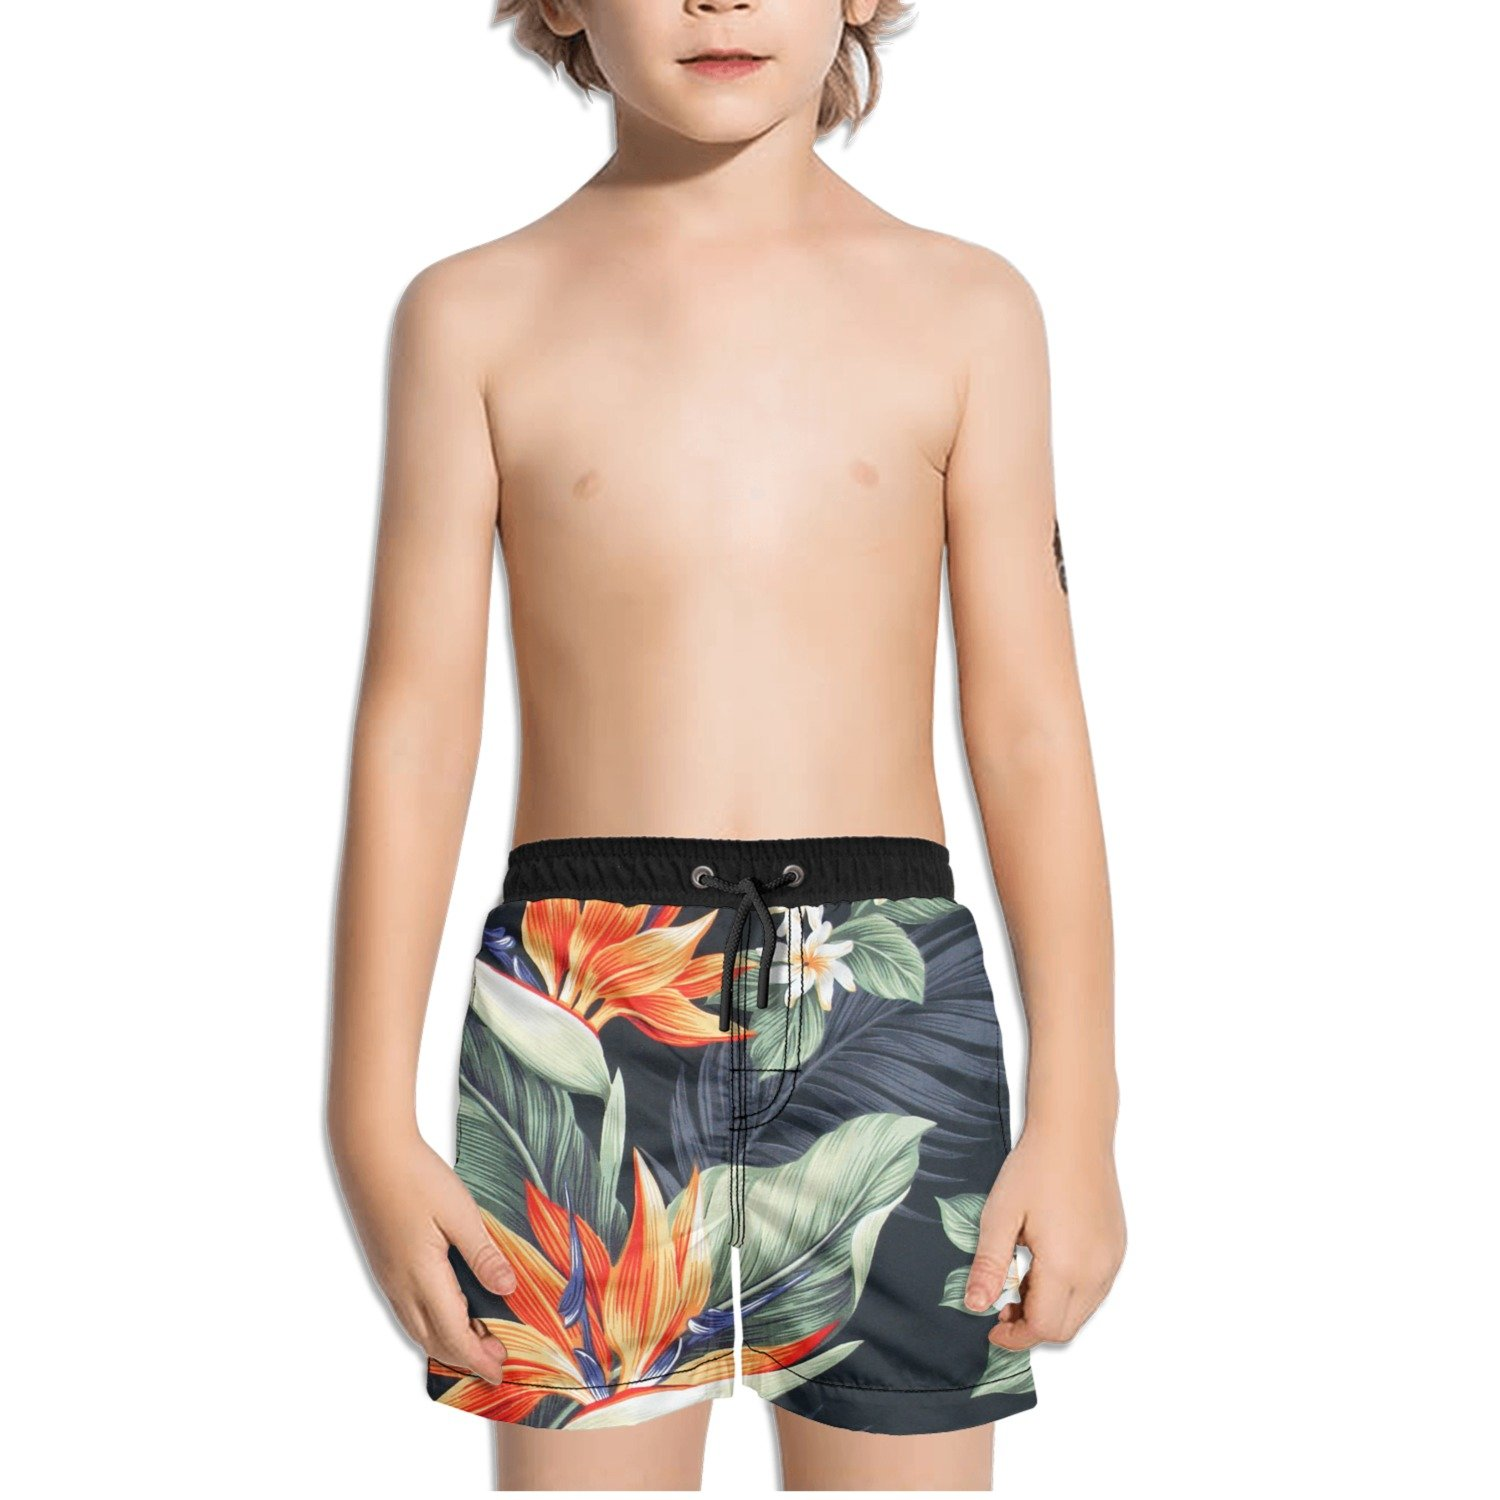 FullBo Vintage Bird of Paradise Little Boy's Short Swim Trunks Quick Dry Beach Shorts